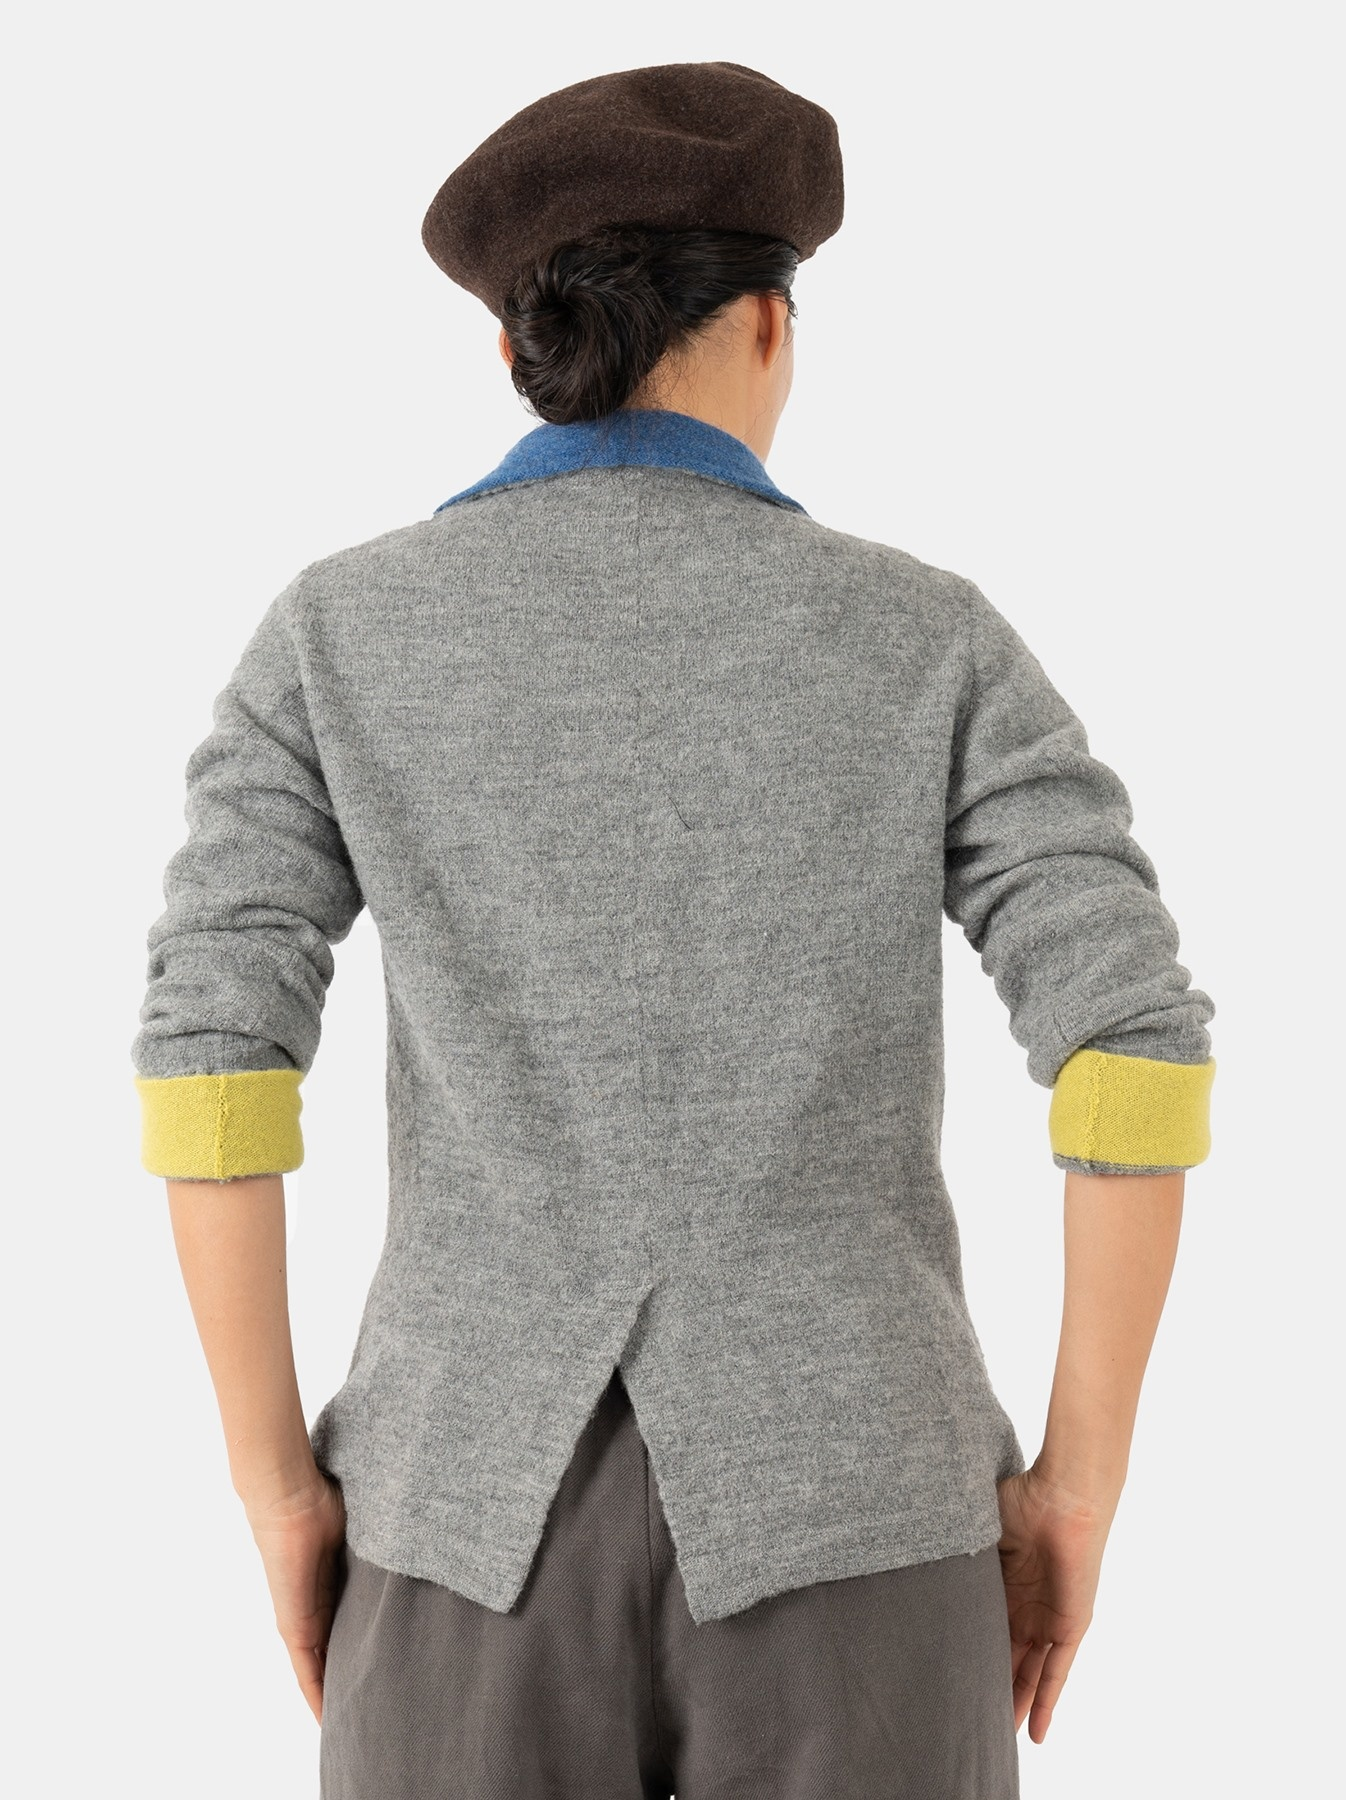 WH Cleric Knit Jacket-5